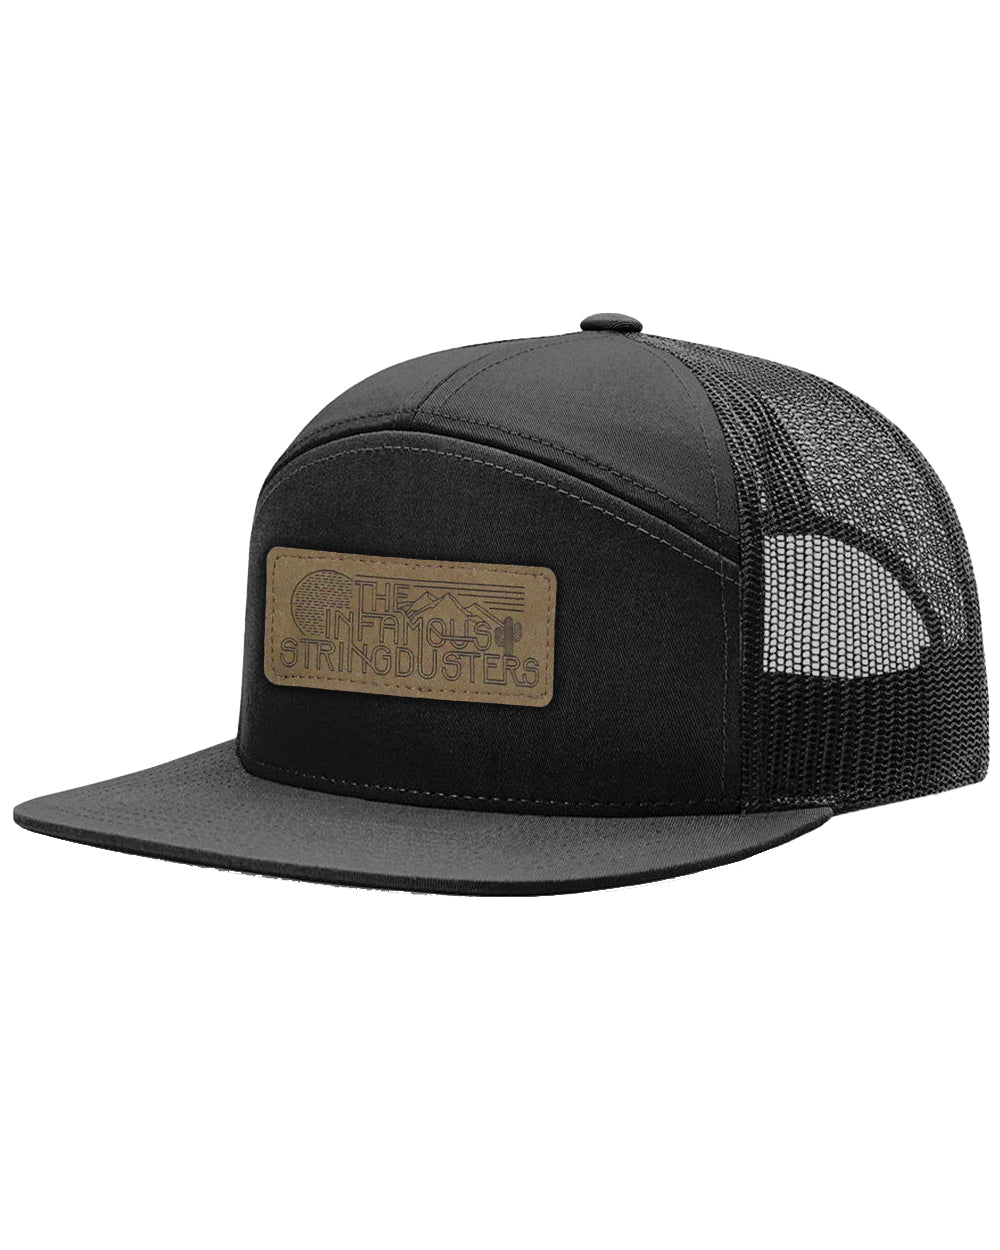 The Infamous Stringdusters 7 Panel Leather Patch Trucker Hat